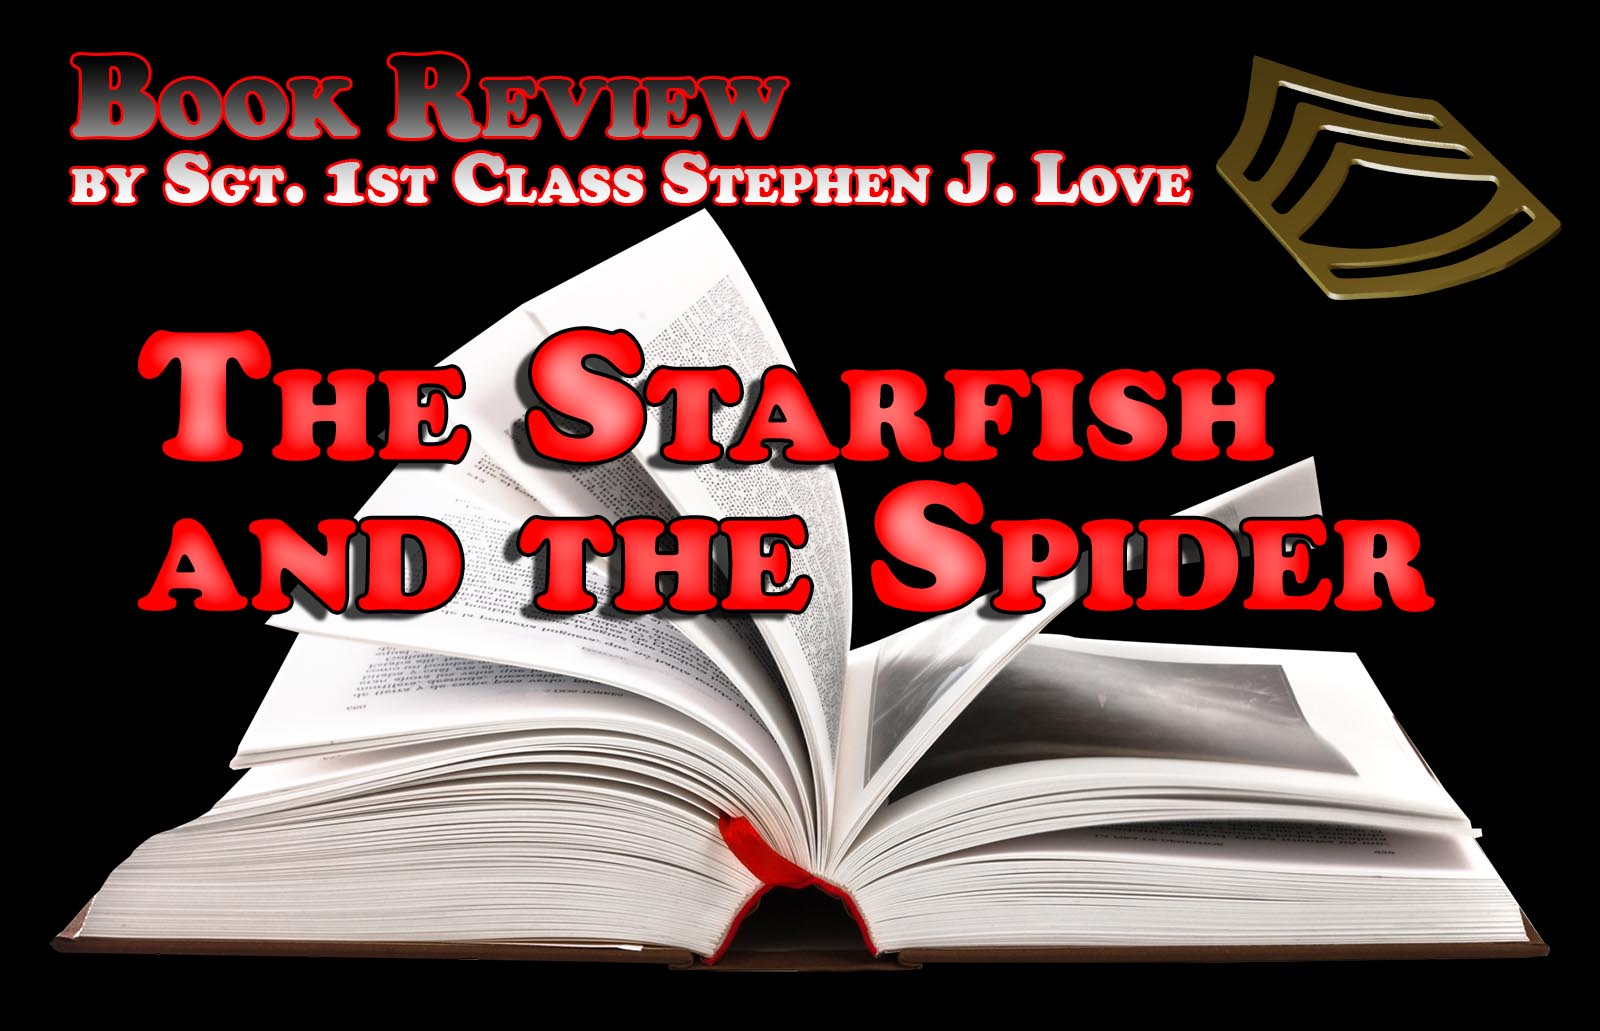 Book review: What I Learned from the Starfish and the Spider